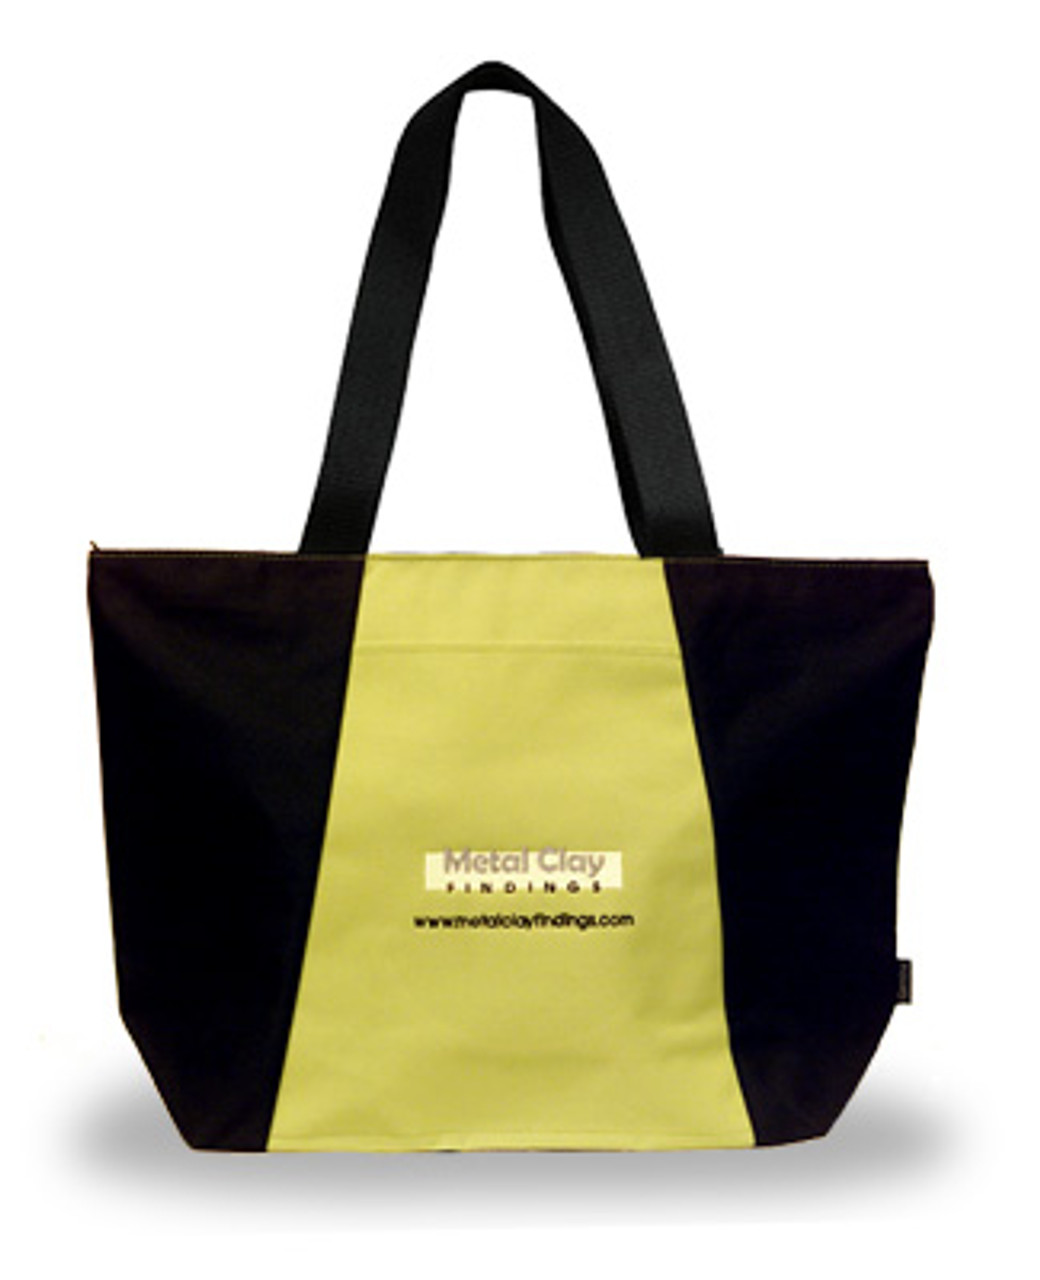 Metal Clay Findings Tote Bag